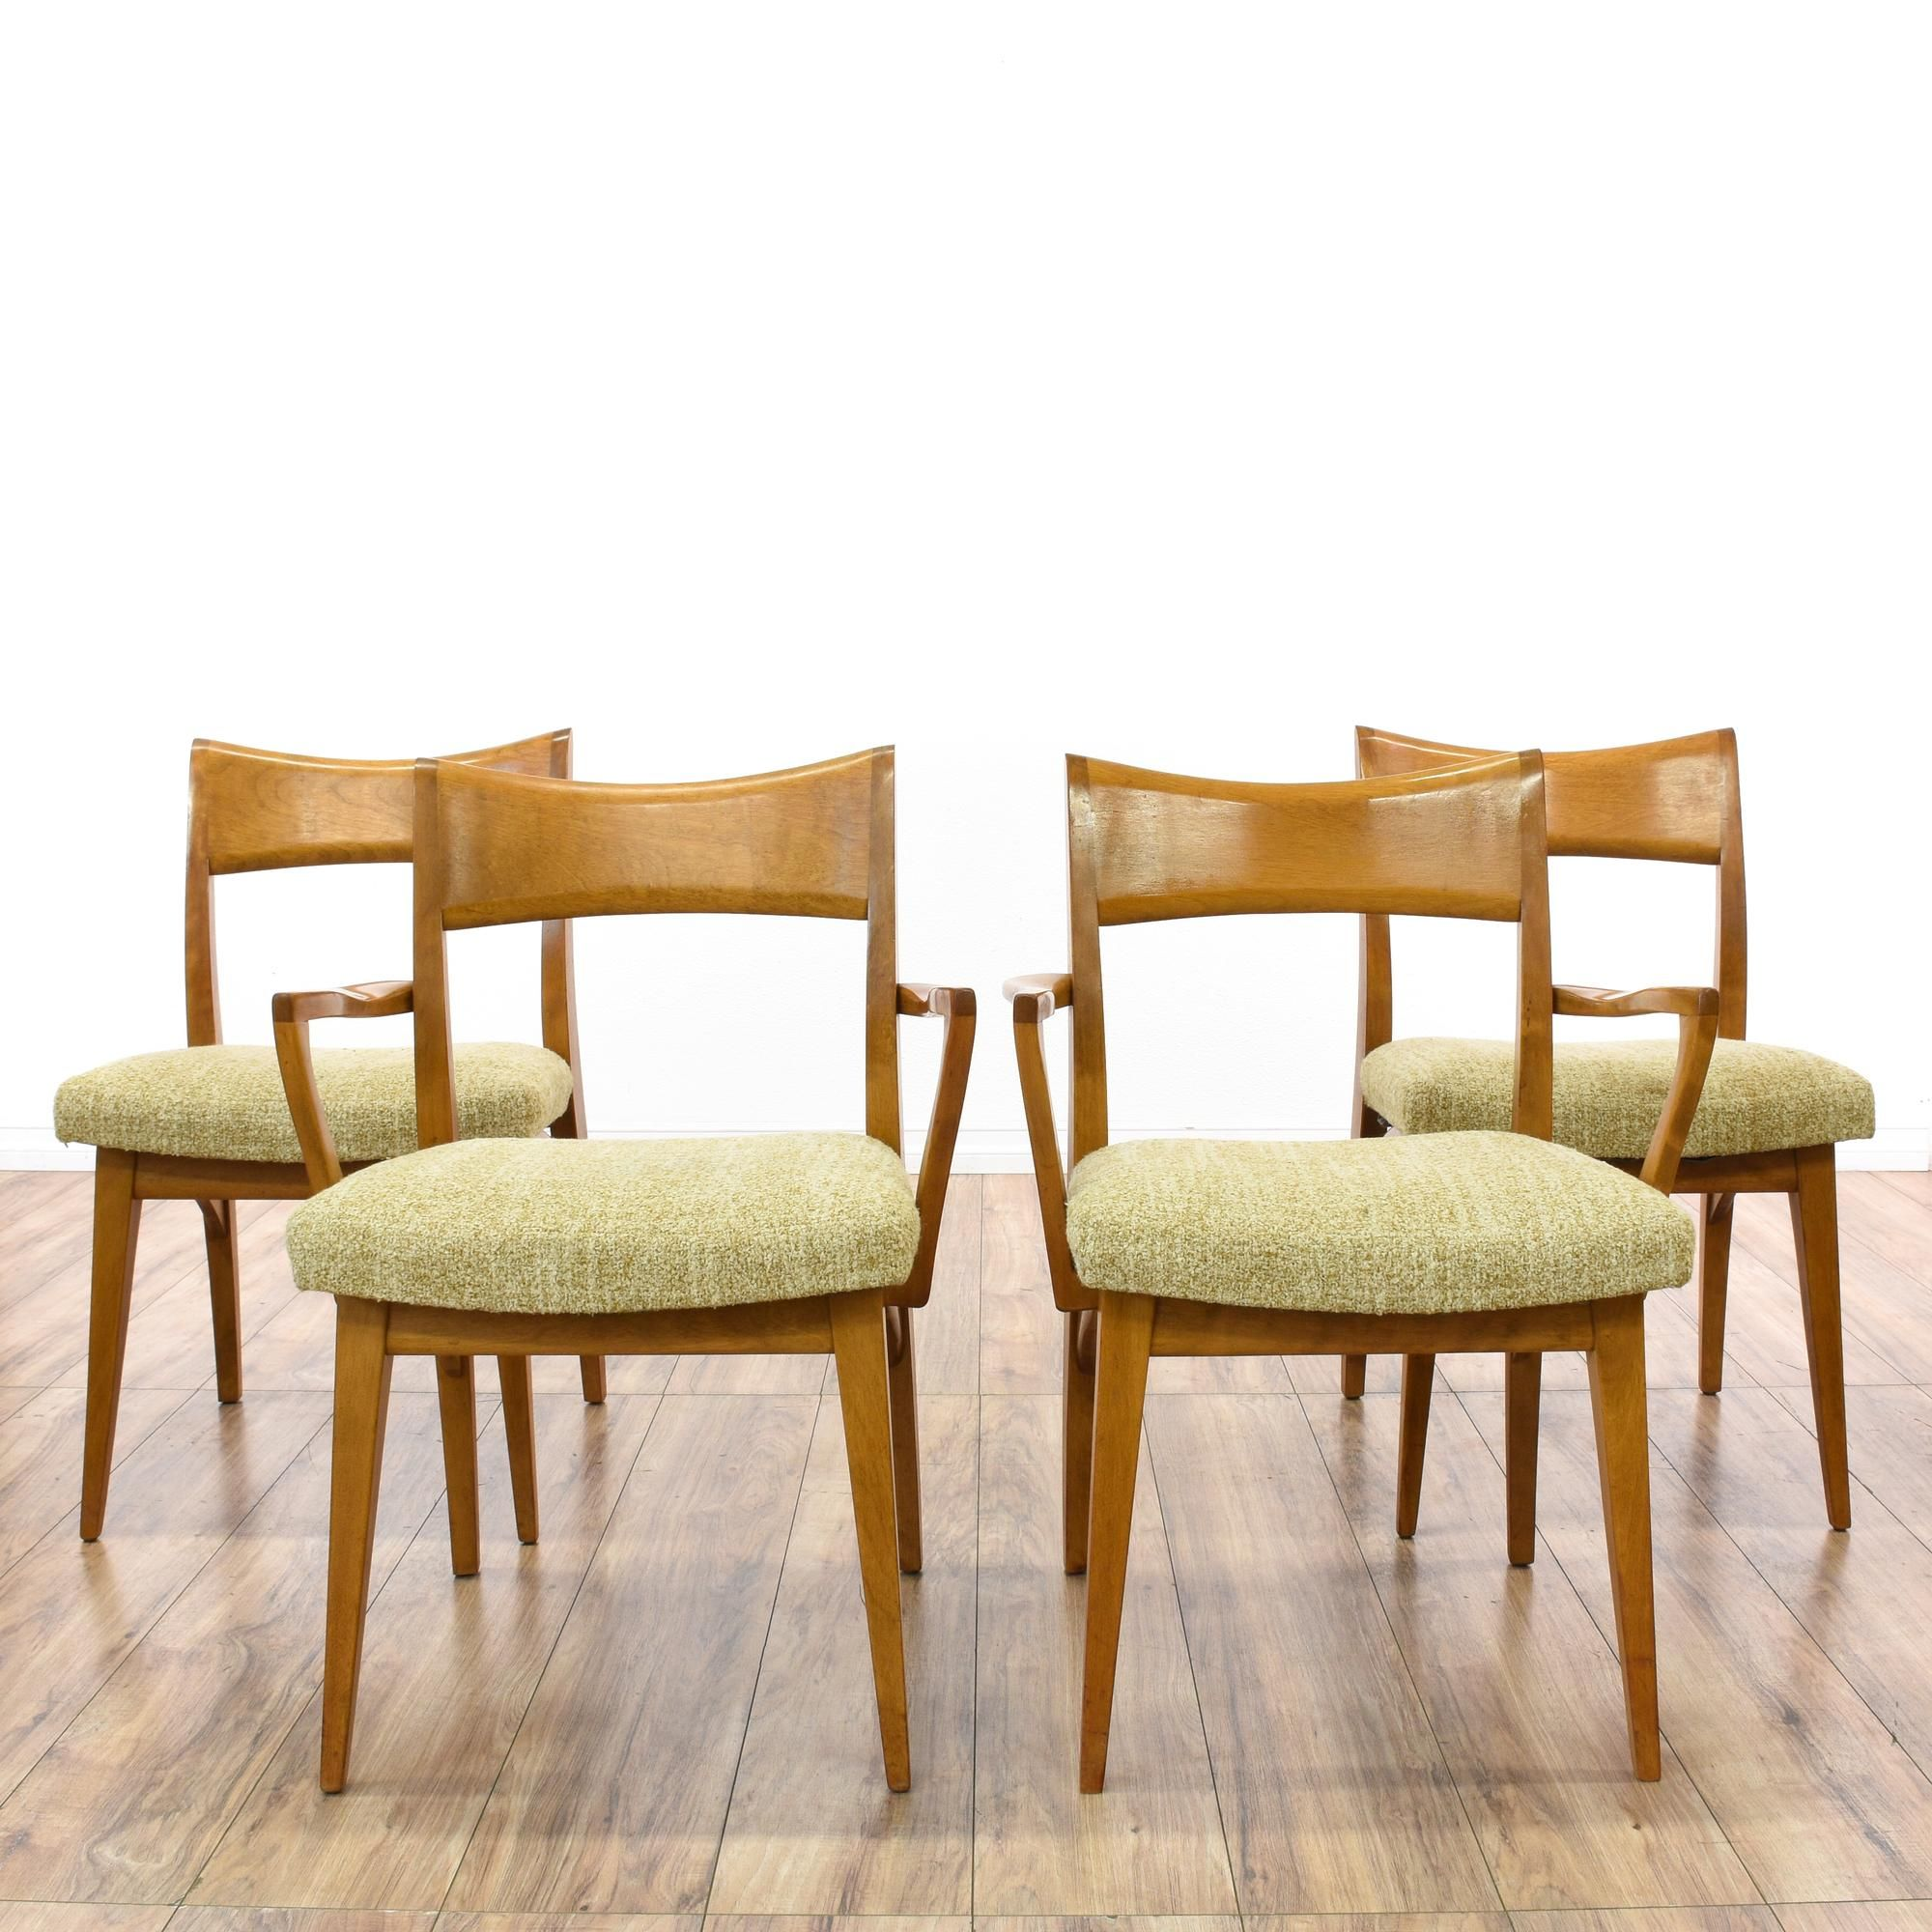 this set of 4 heywood wakefield dining chairs are featured in a